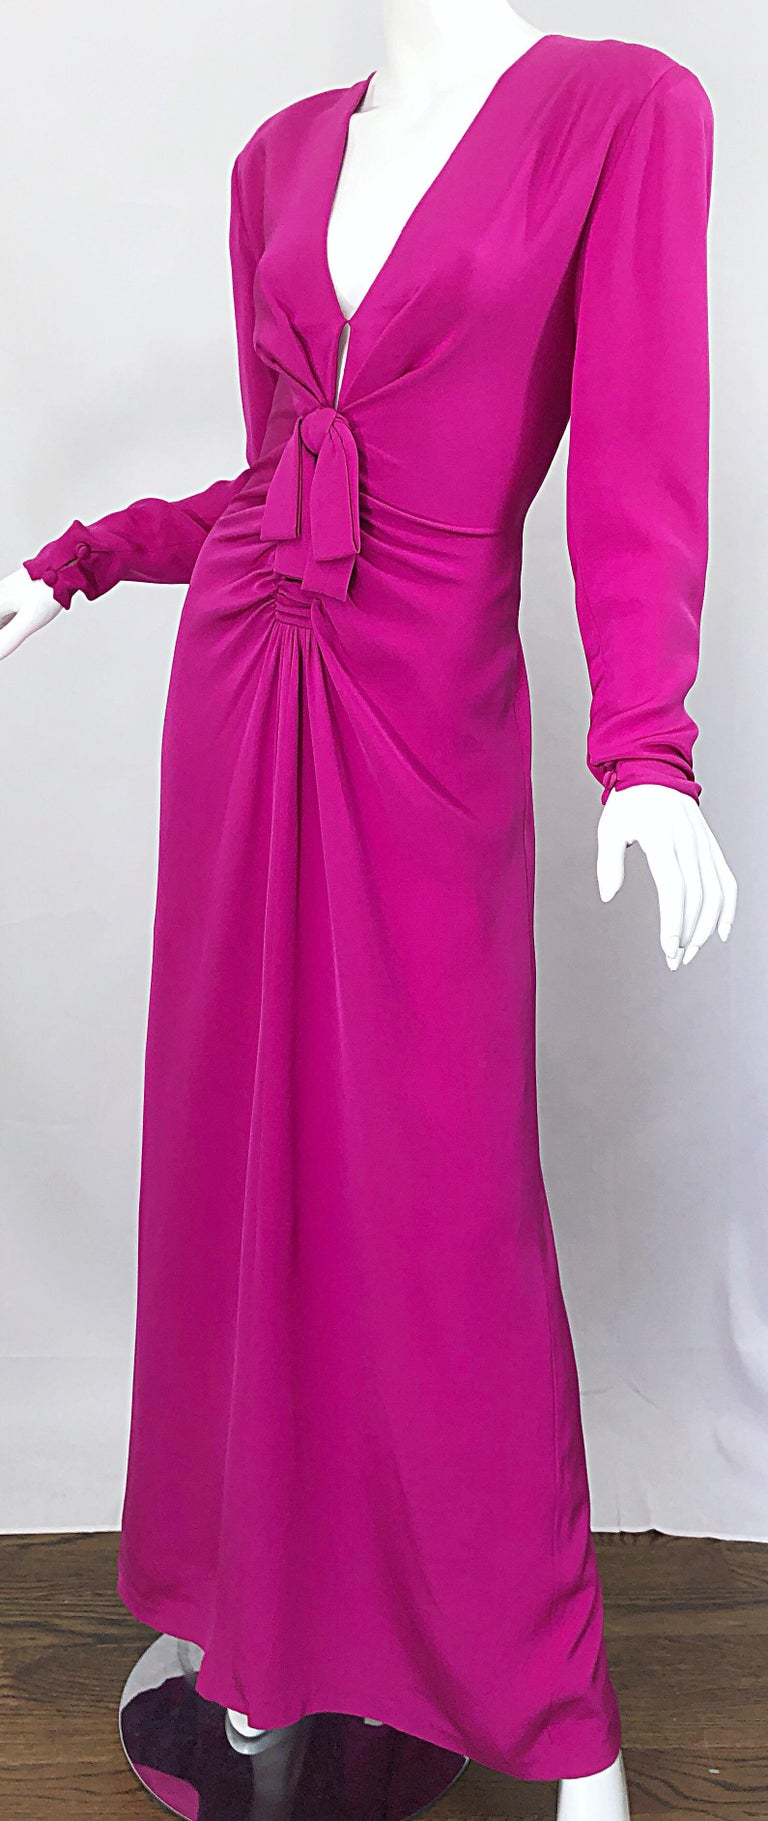 Vintage Bill Blass Size 10 Hot Pink Silk Jersey Cut - Out 1980s 80s Evening Gown For Sale 2